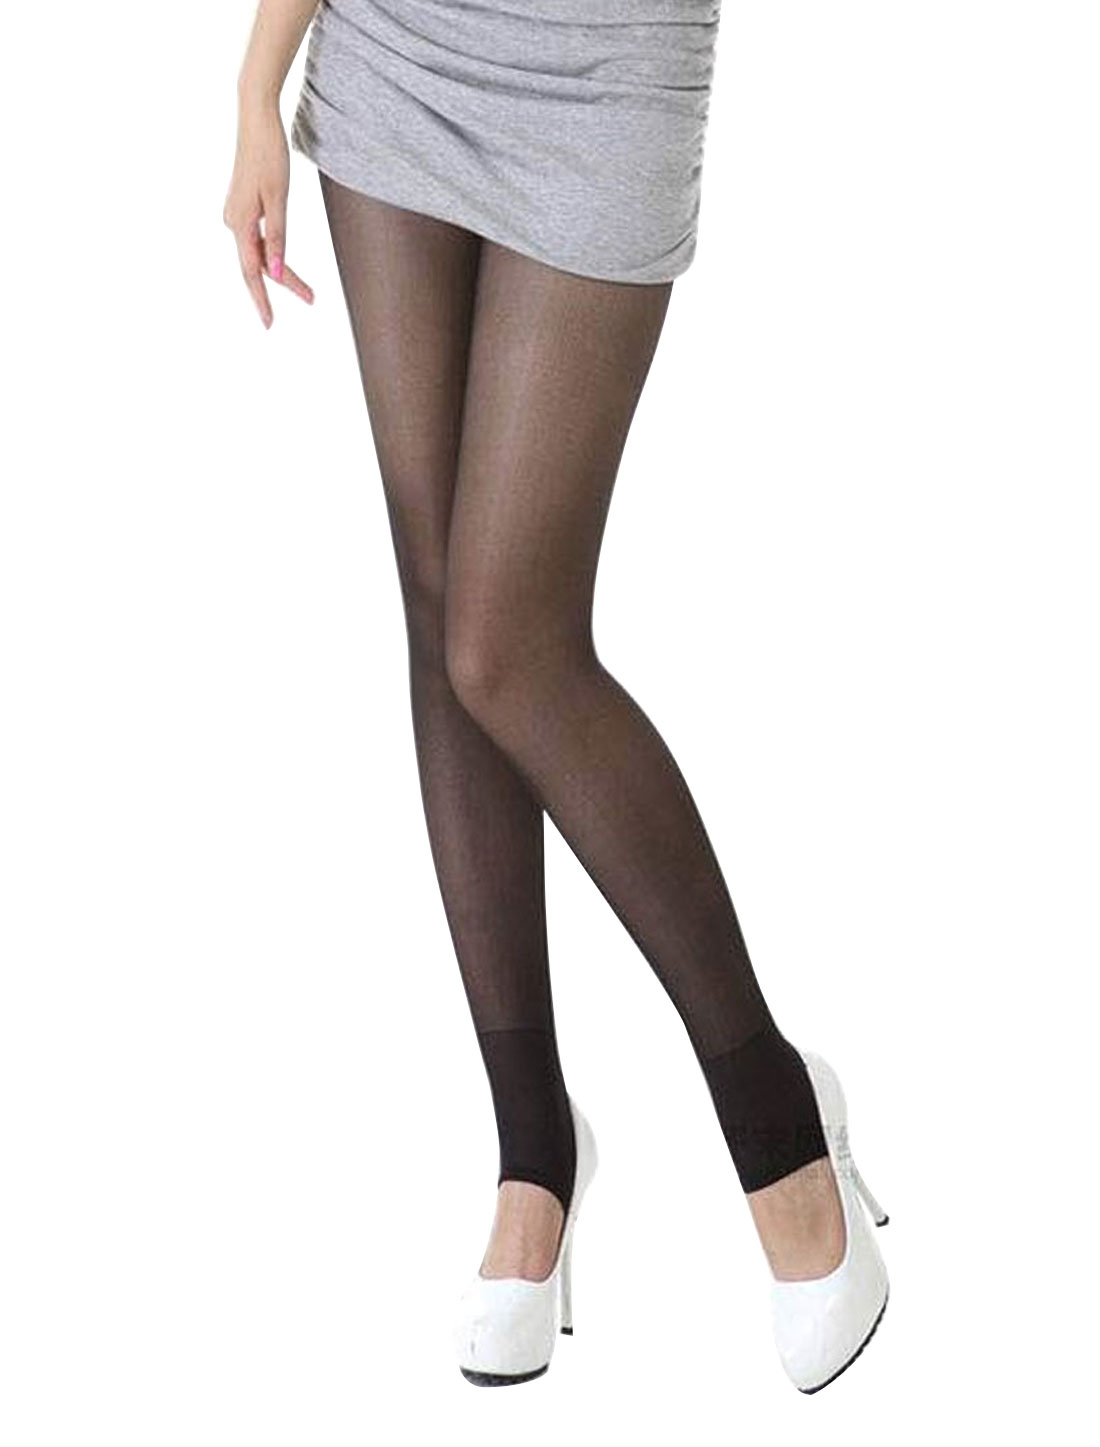 Ladies Thin Sheer Elastic Waist Stirrup Tights Leggings Pantyhose Black XS